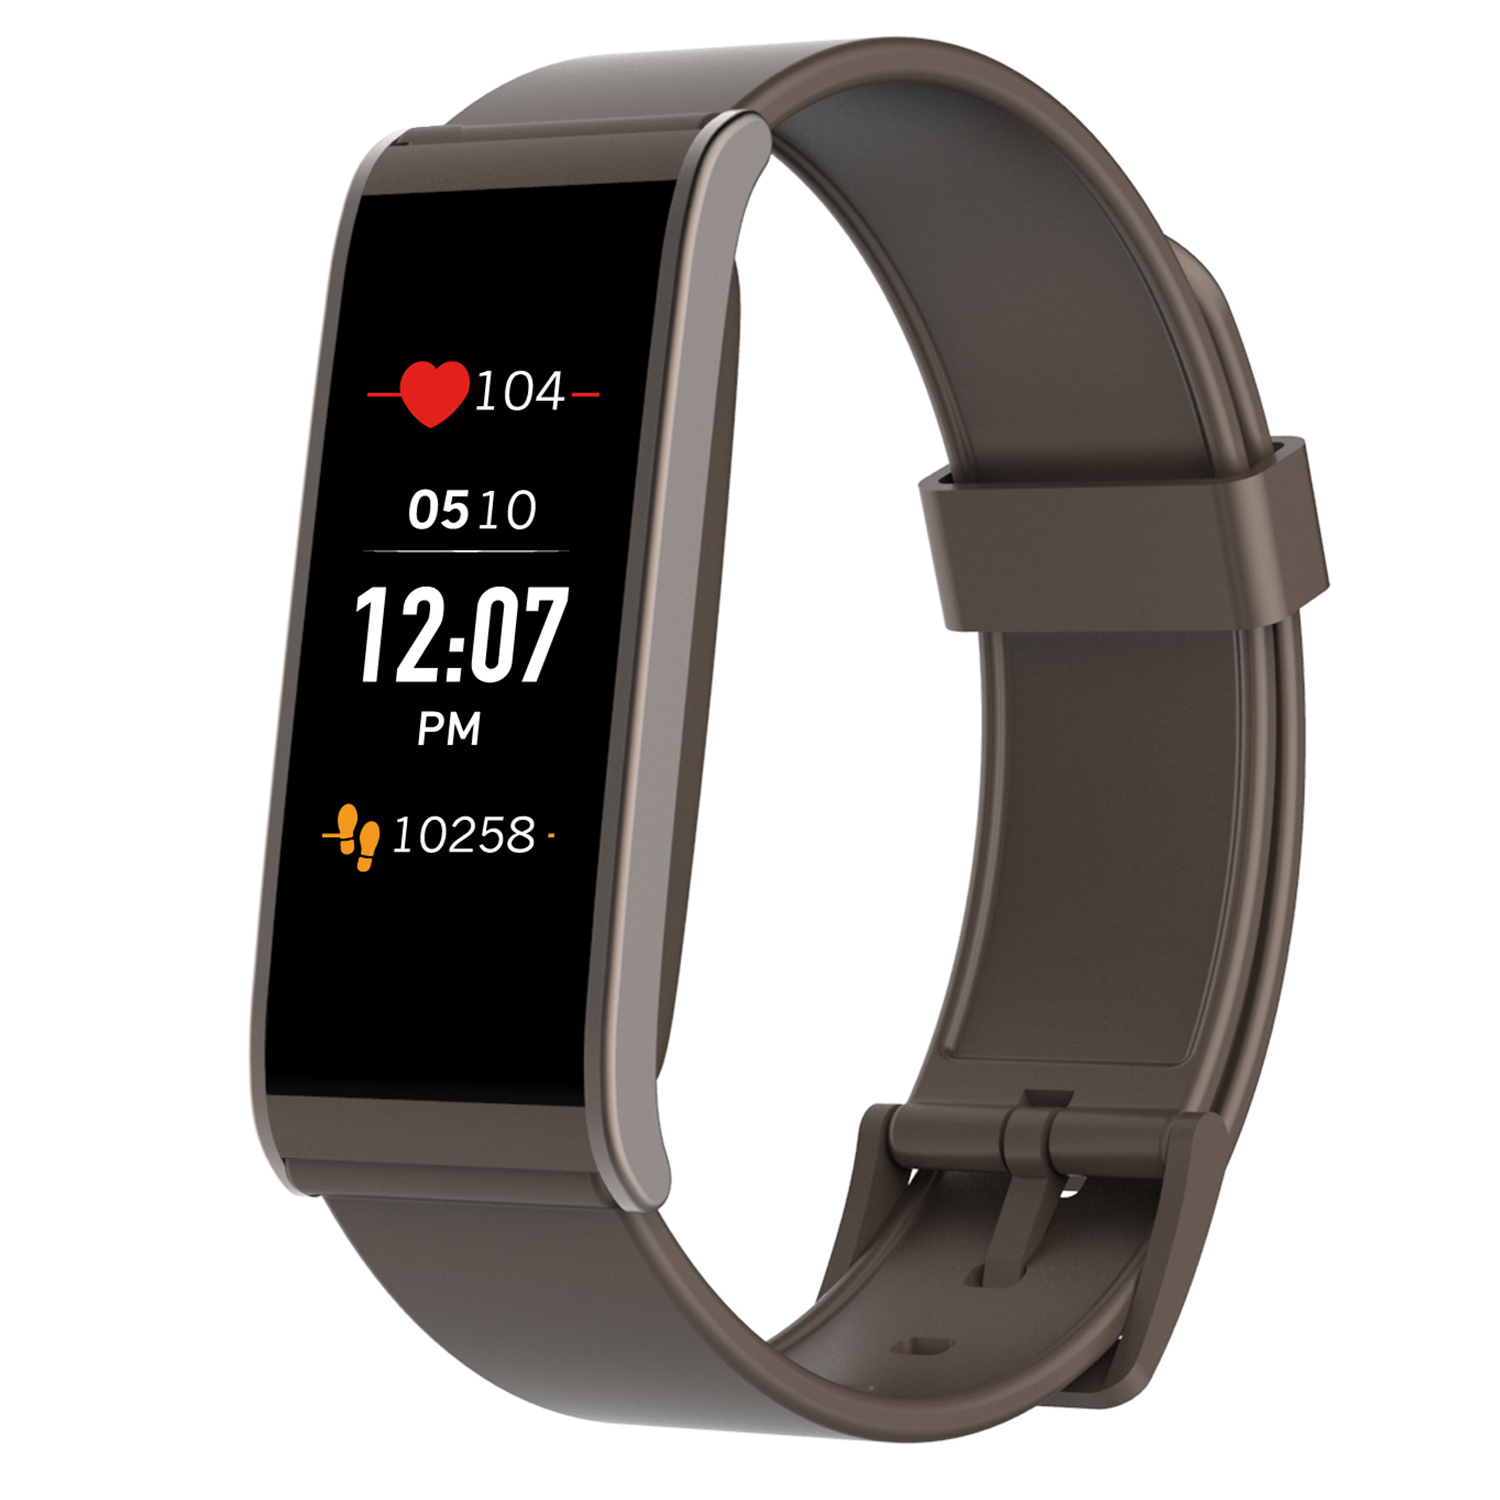 MyKronoz ZeFit4 HR Fitness Activity Tracker with Heart Rate Monitoring, Color Touchscreen & Smart Notifications - Black/Black